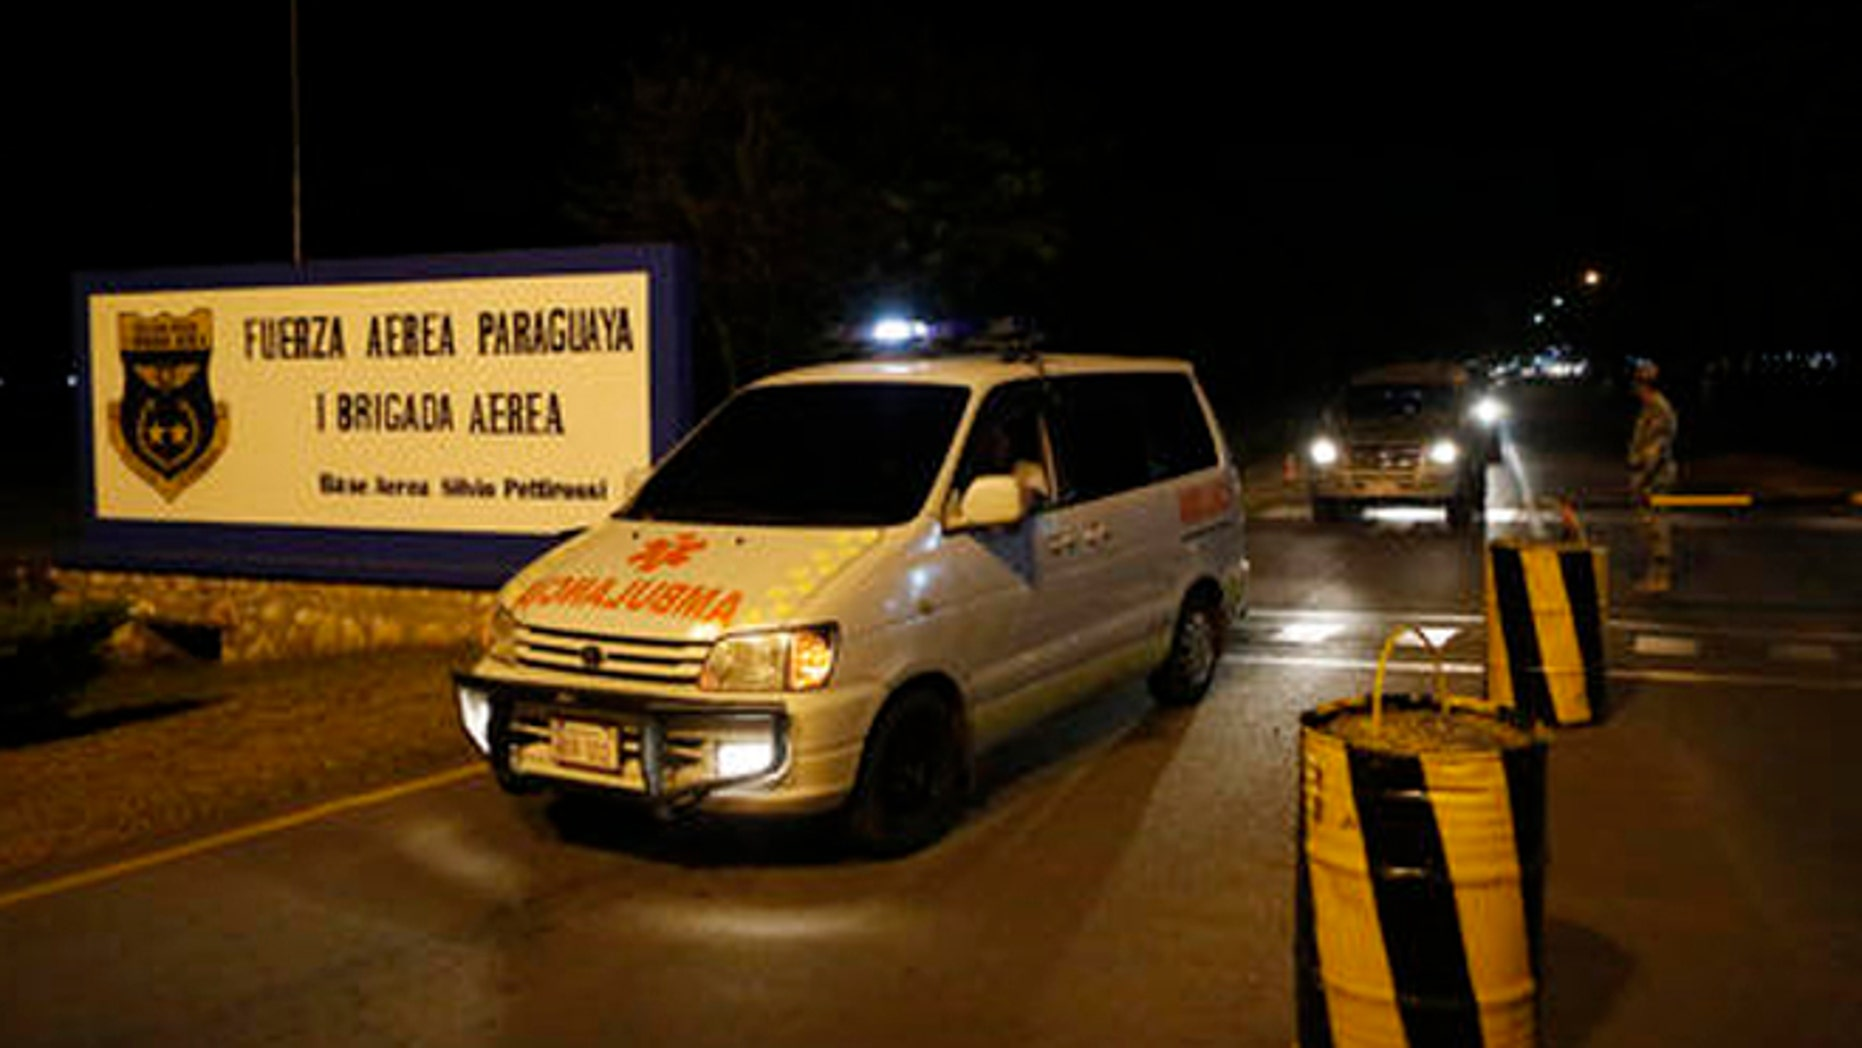 Ambulances transport the coffin of one of Paraguay's army soldiers killed in an attack on Saturday, Aug. 27, 2016, in Arroyito at asuncion airport, Paraguay. Suspected members of a little-known Paraguayan guerrilla group killed multiple soldiers in the attack in Arroyito. (AP Photo/Jorge Saenz)